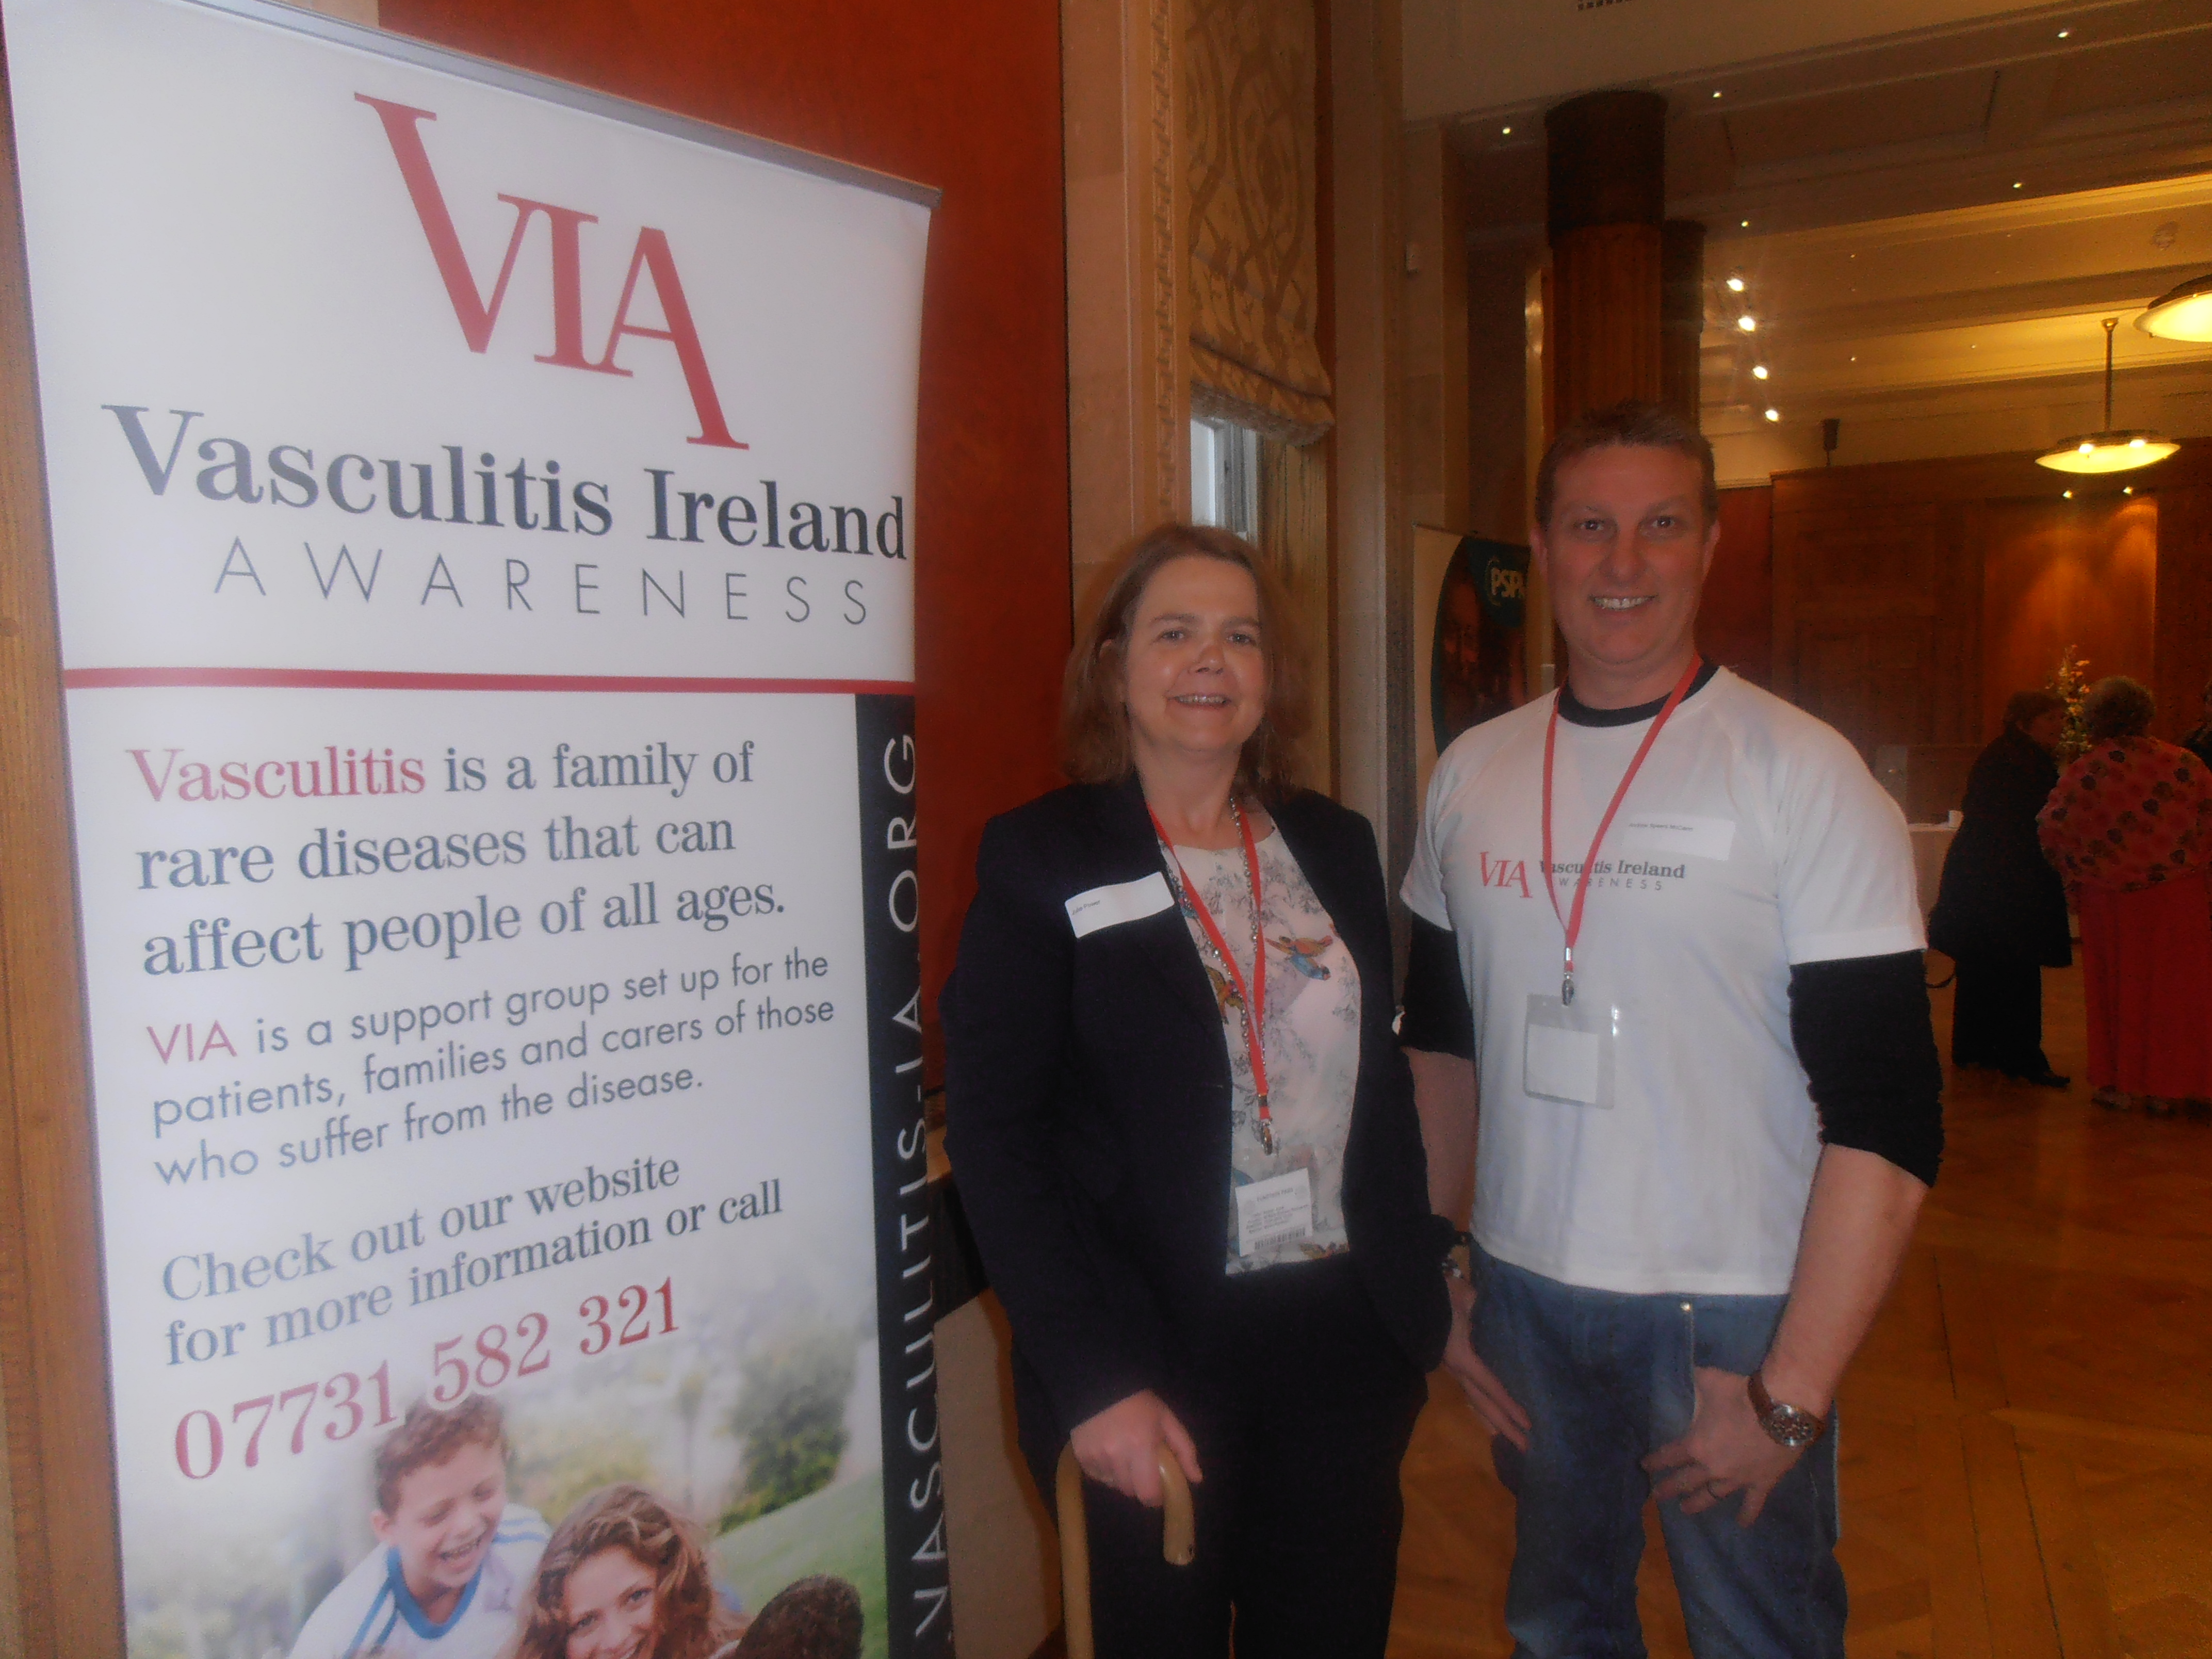 Andrew and Caroline from Vasculitis ireland